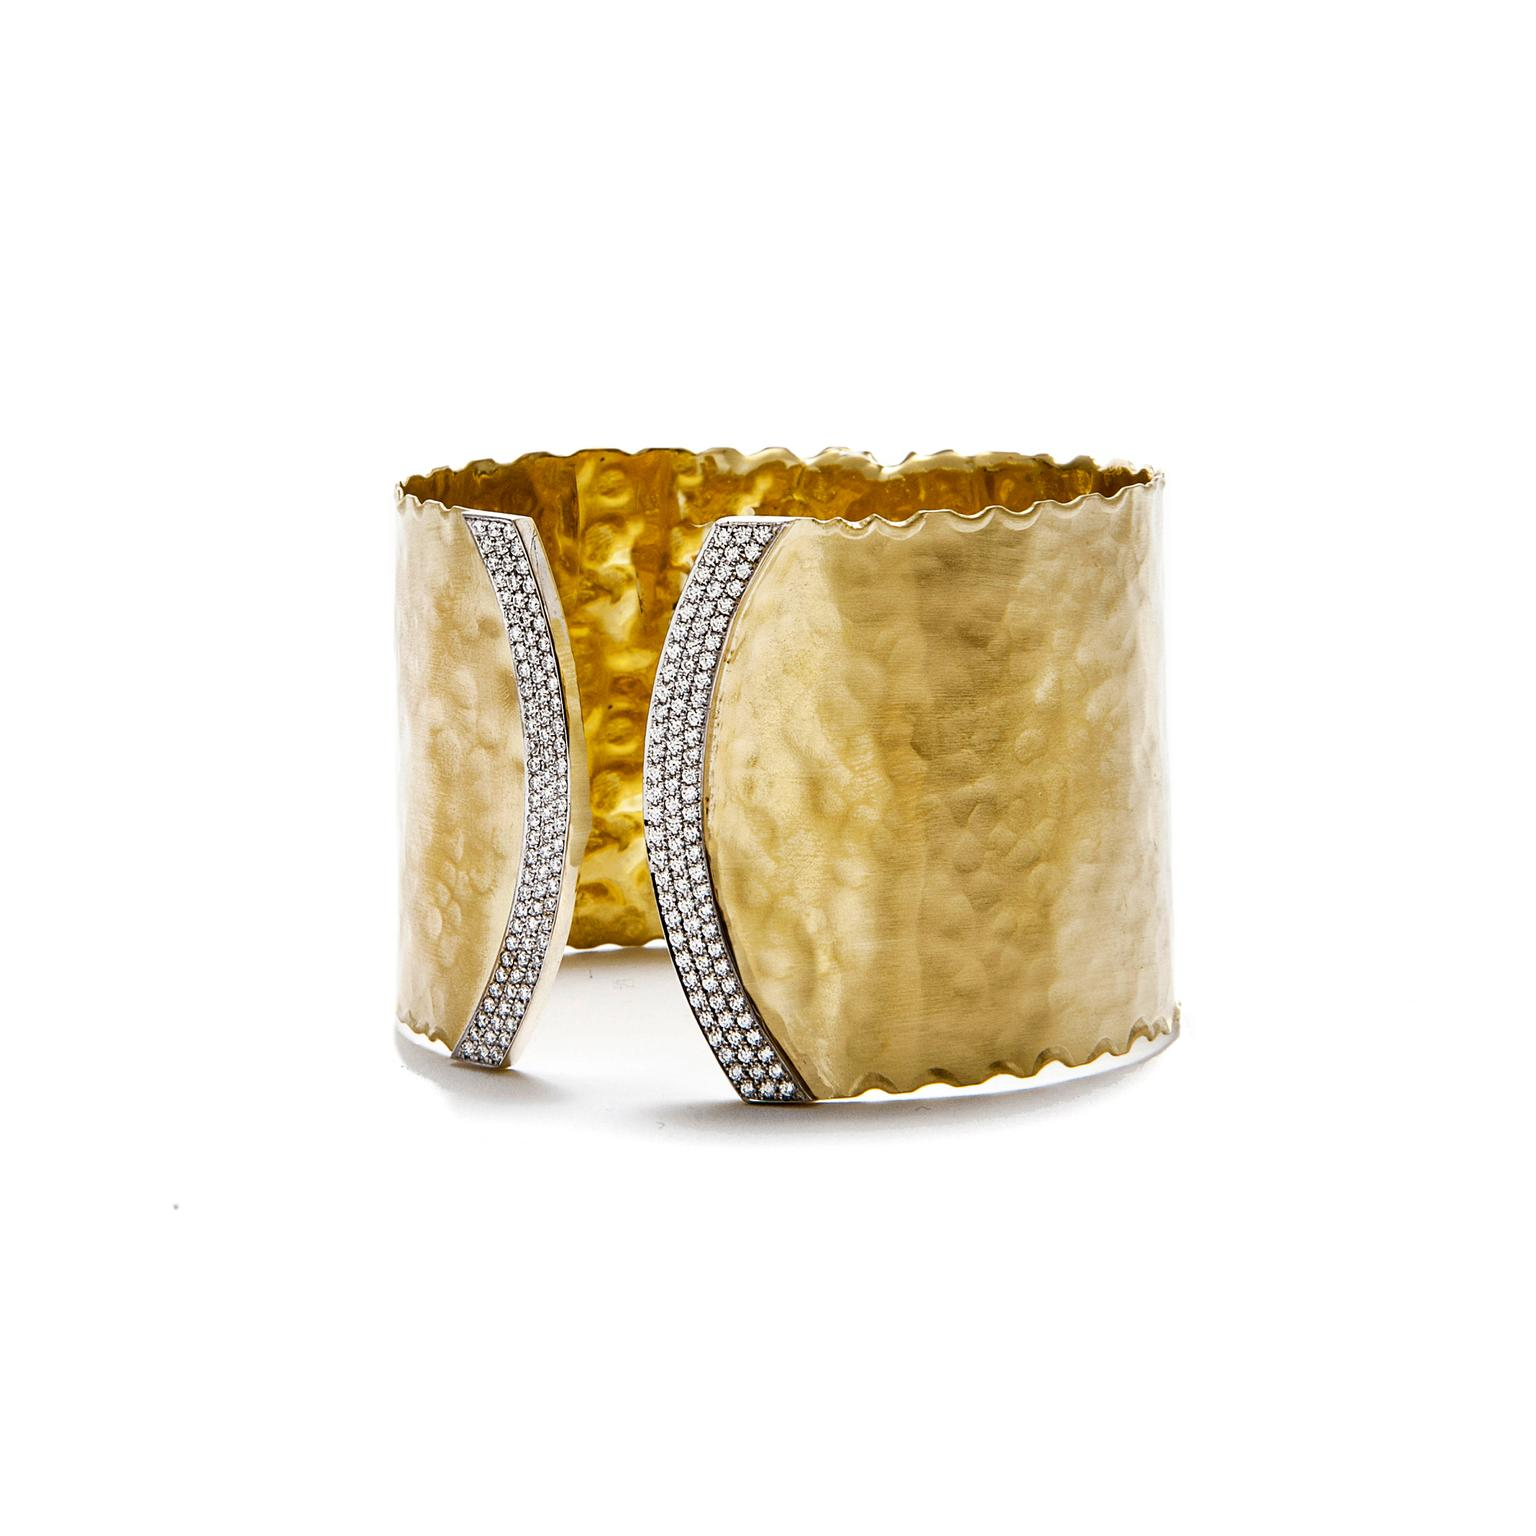 Jordan Alexander gold and diamond cuff